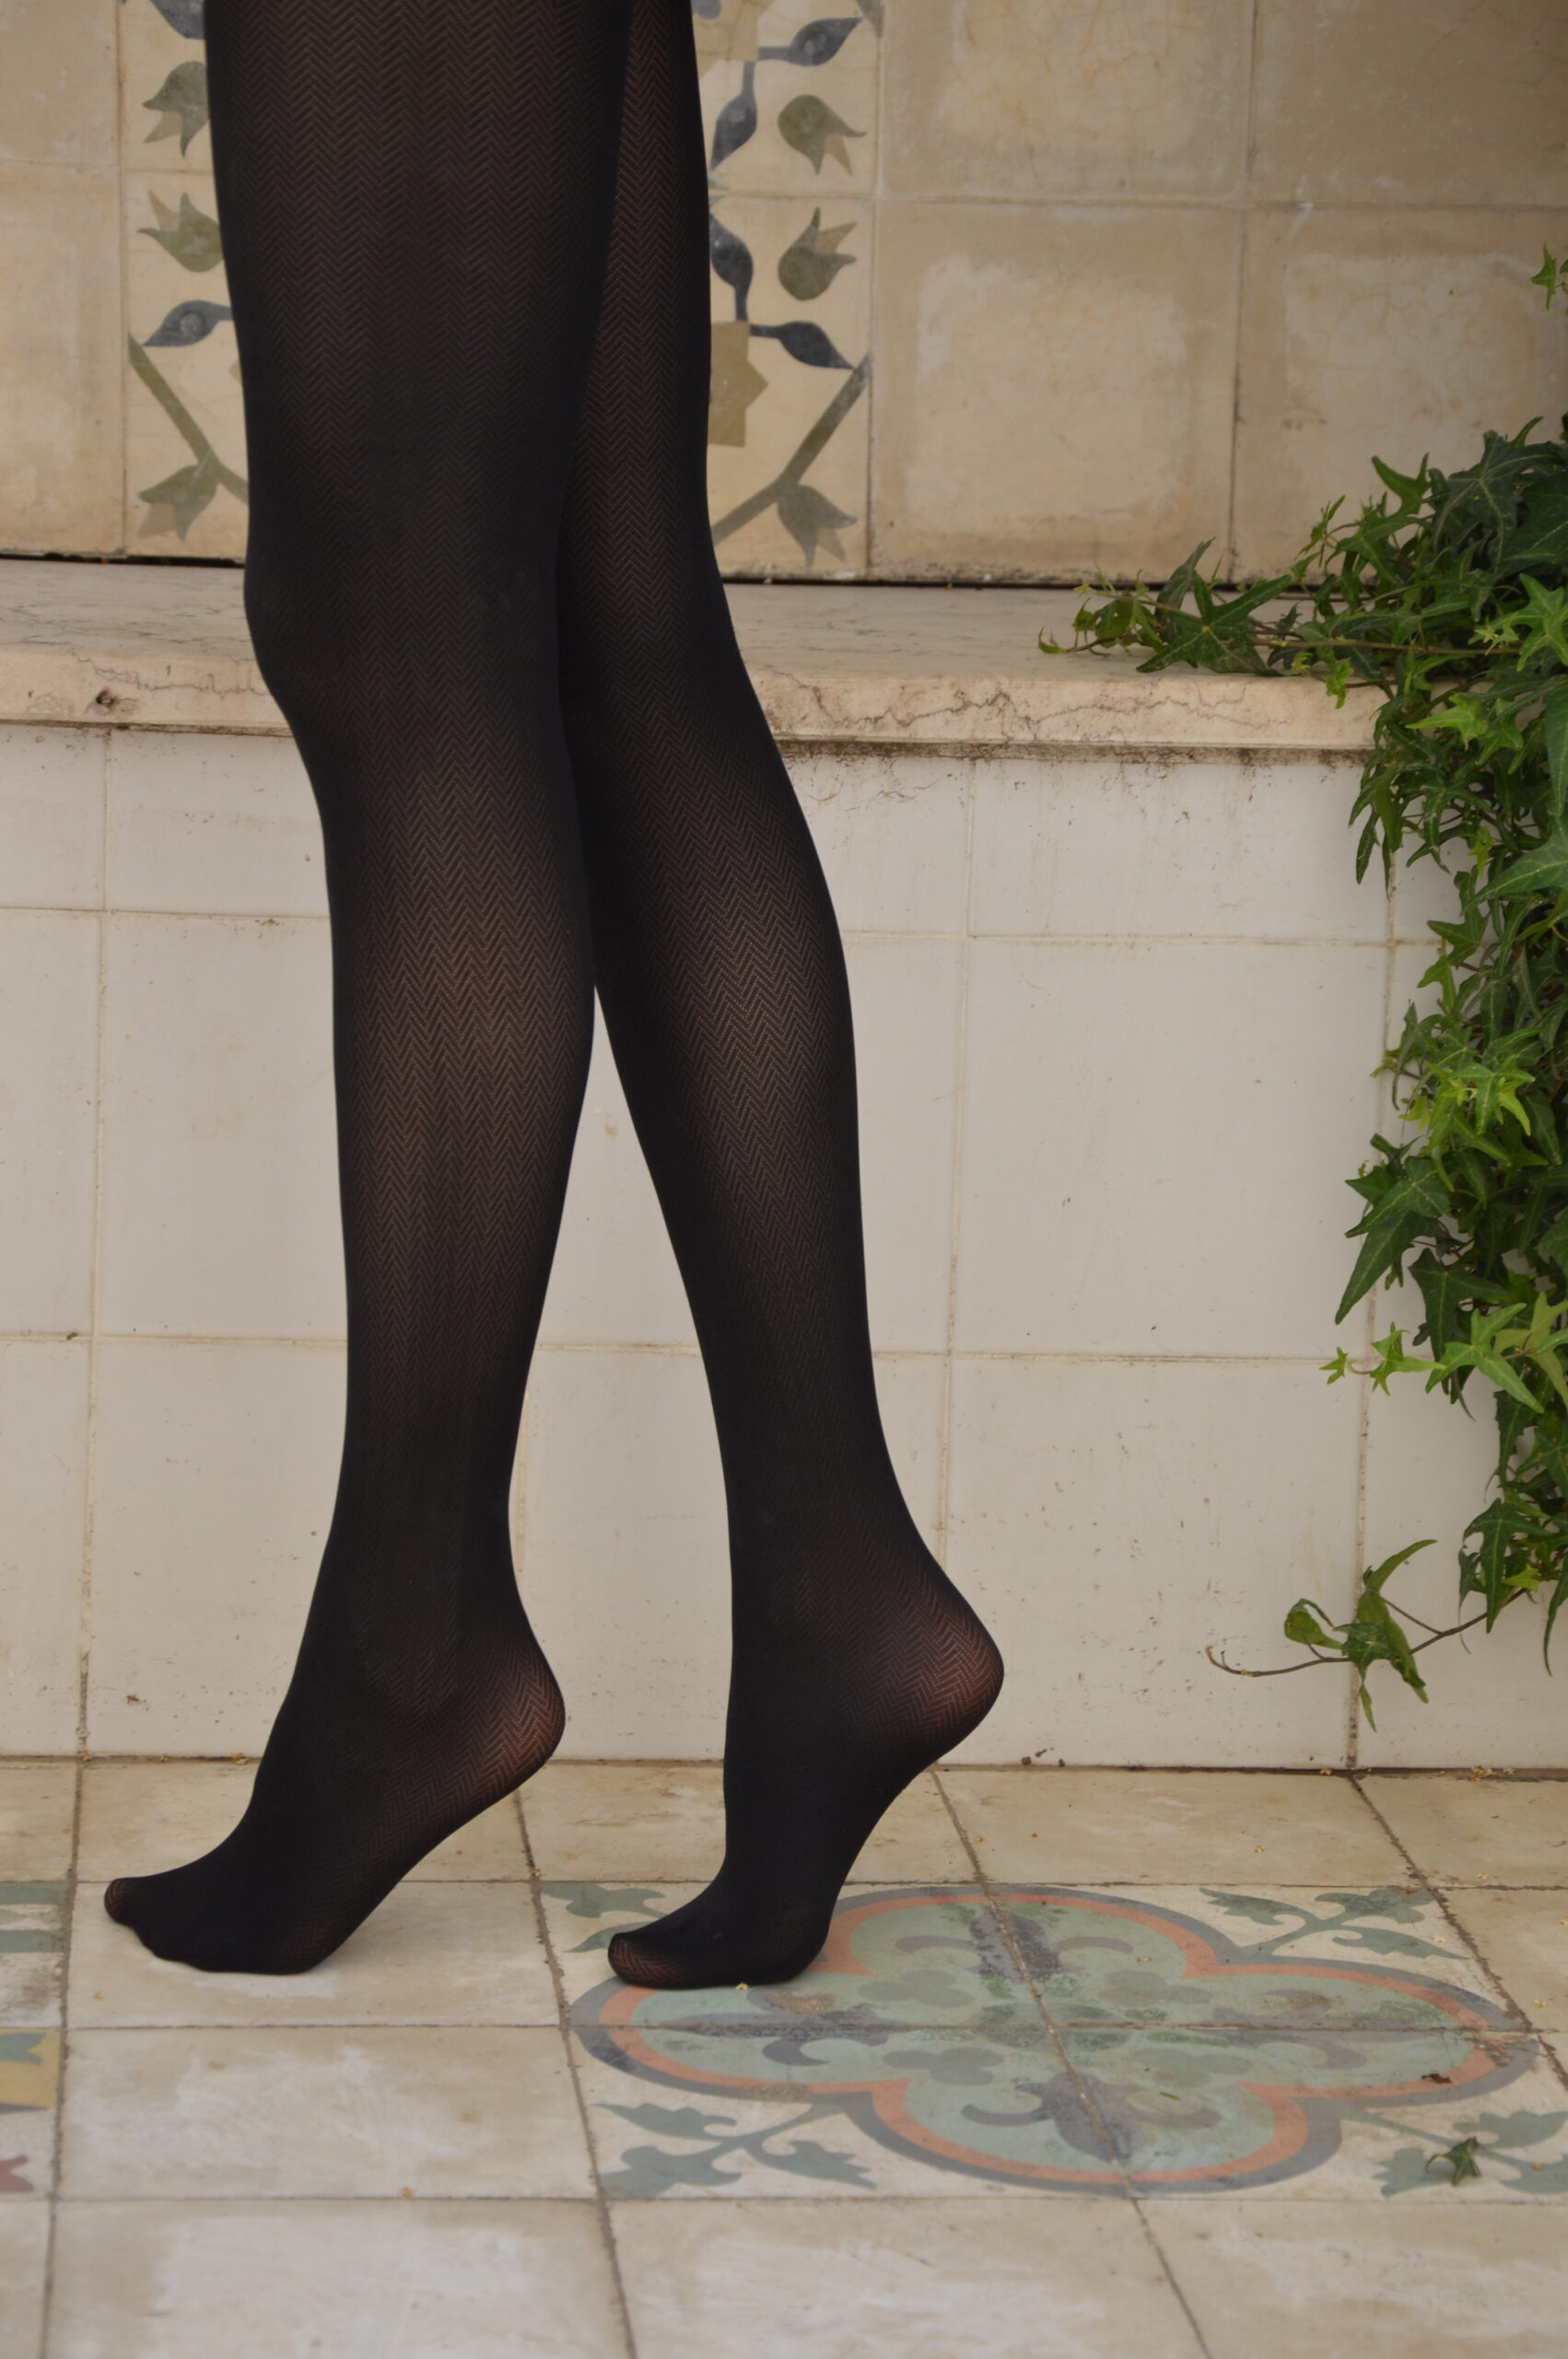 recycled stockings